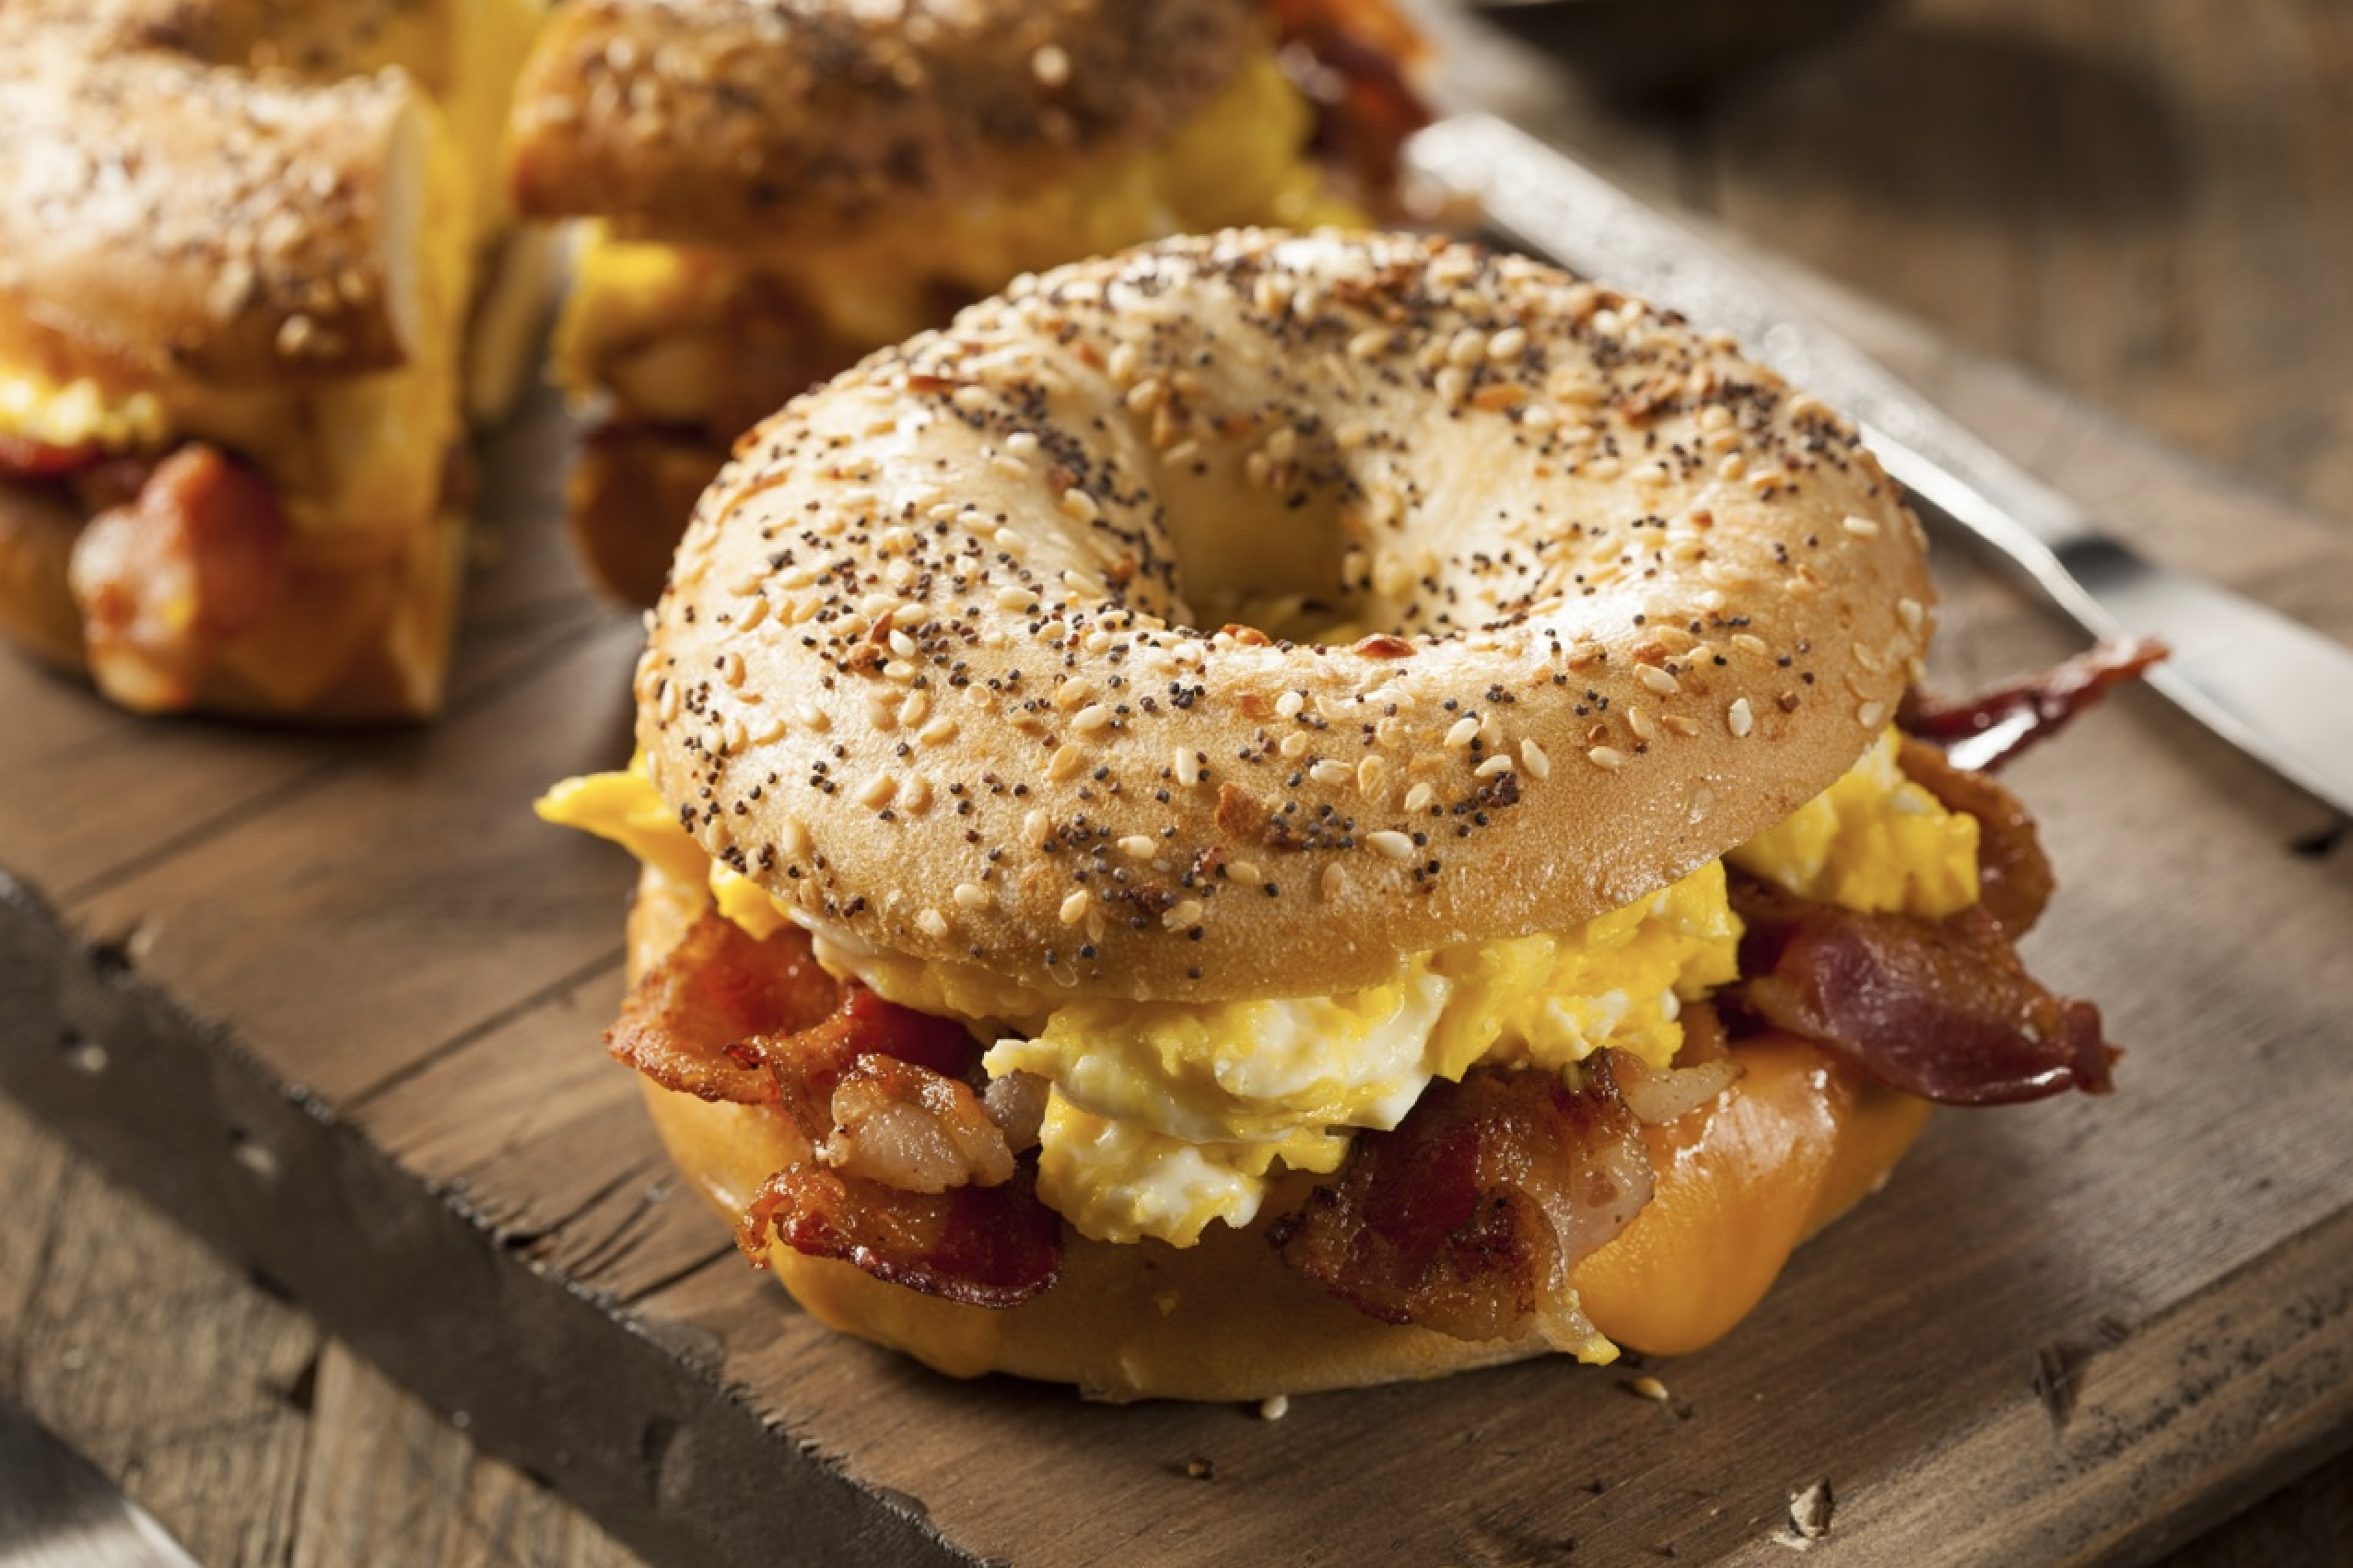 Egg, Bacon & Cheese Breakfast Bagel